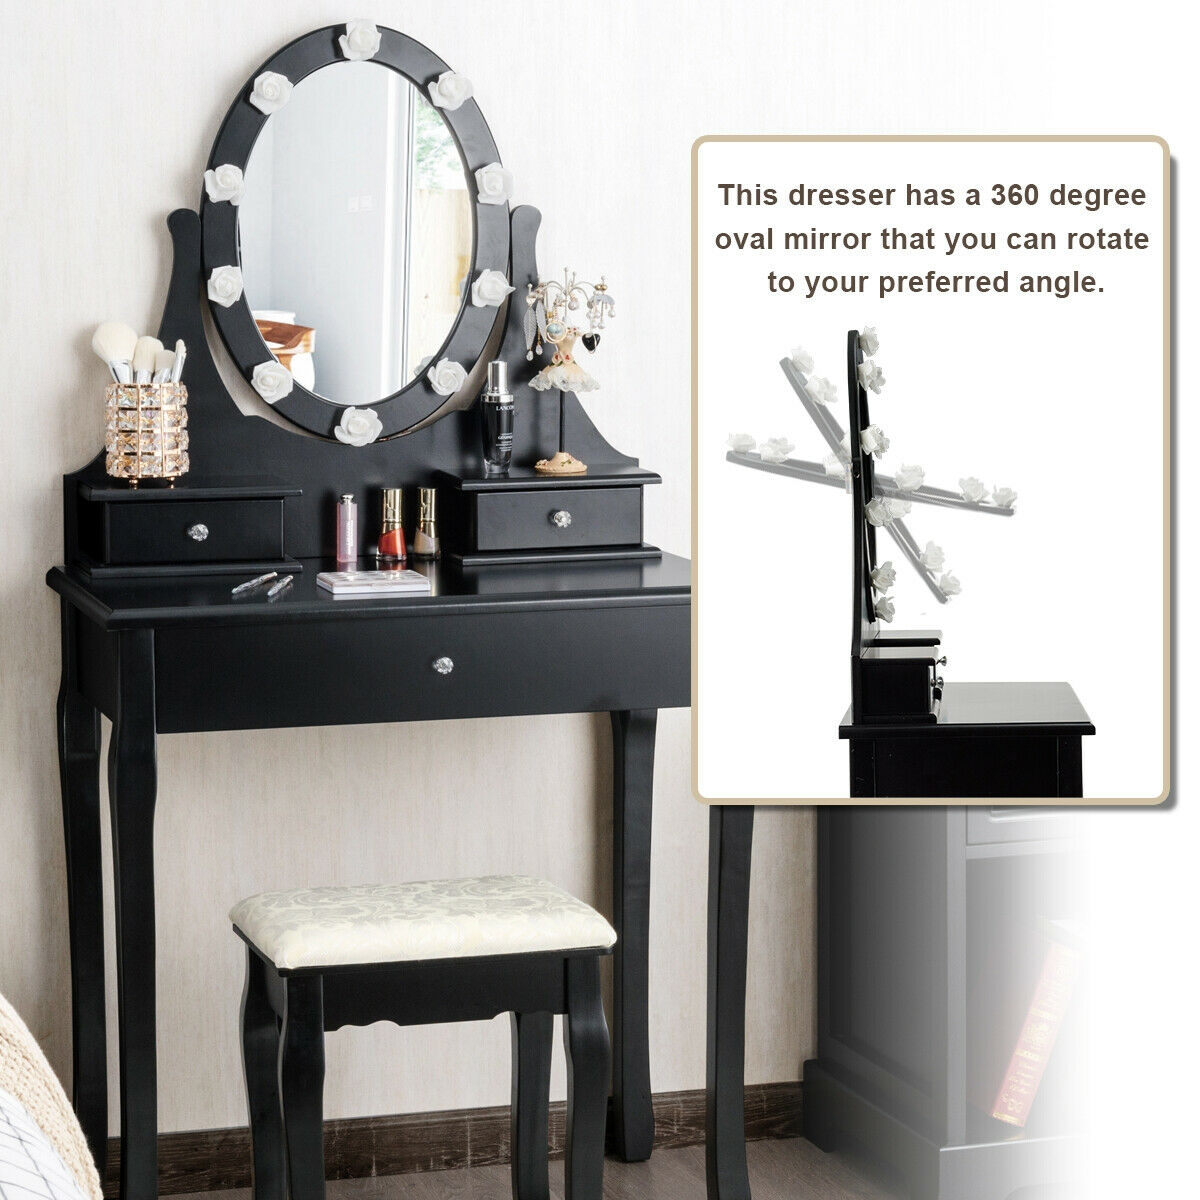 3 Drawers Lighted Mirror Vanity Makeup Dressing Table Stool Set